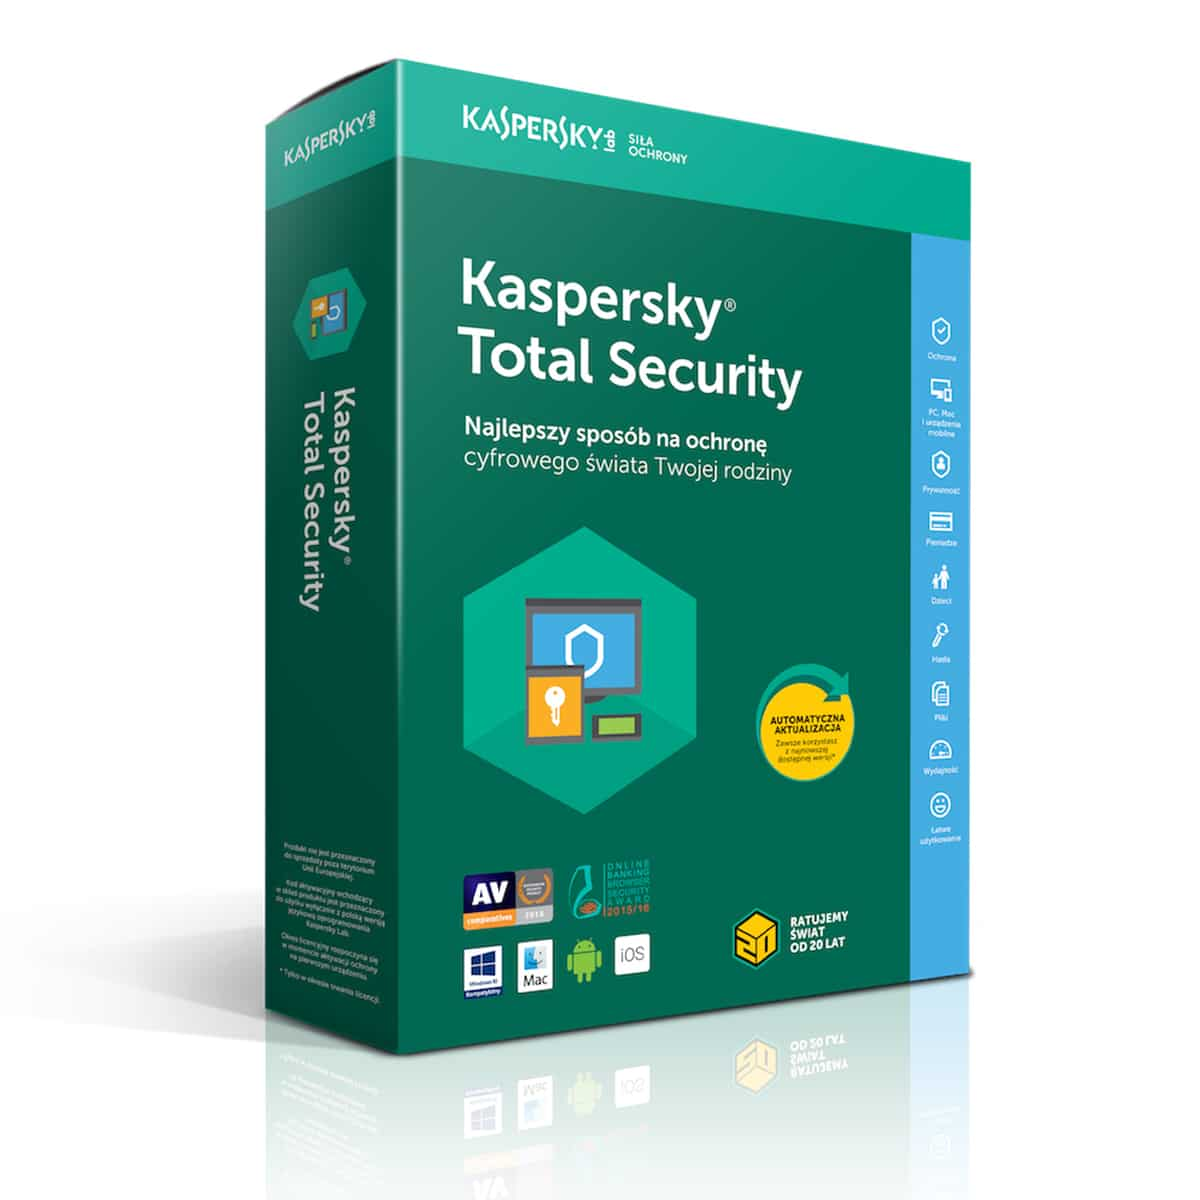 Kaspersky Total Security Crack 2020 & Activation Code Full Latest Download